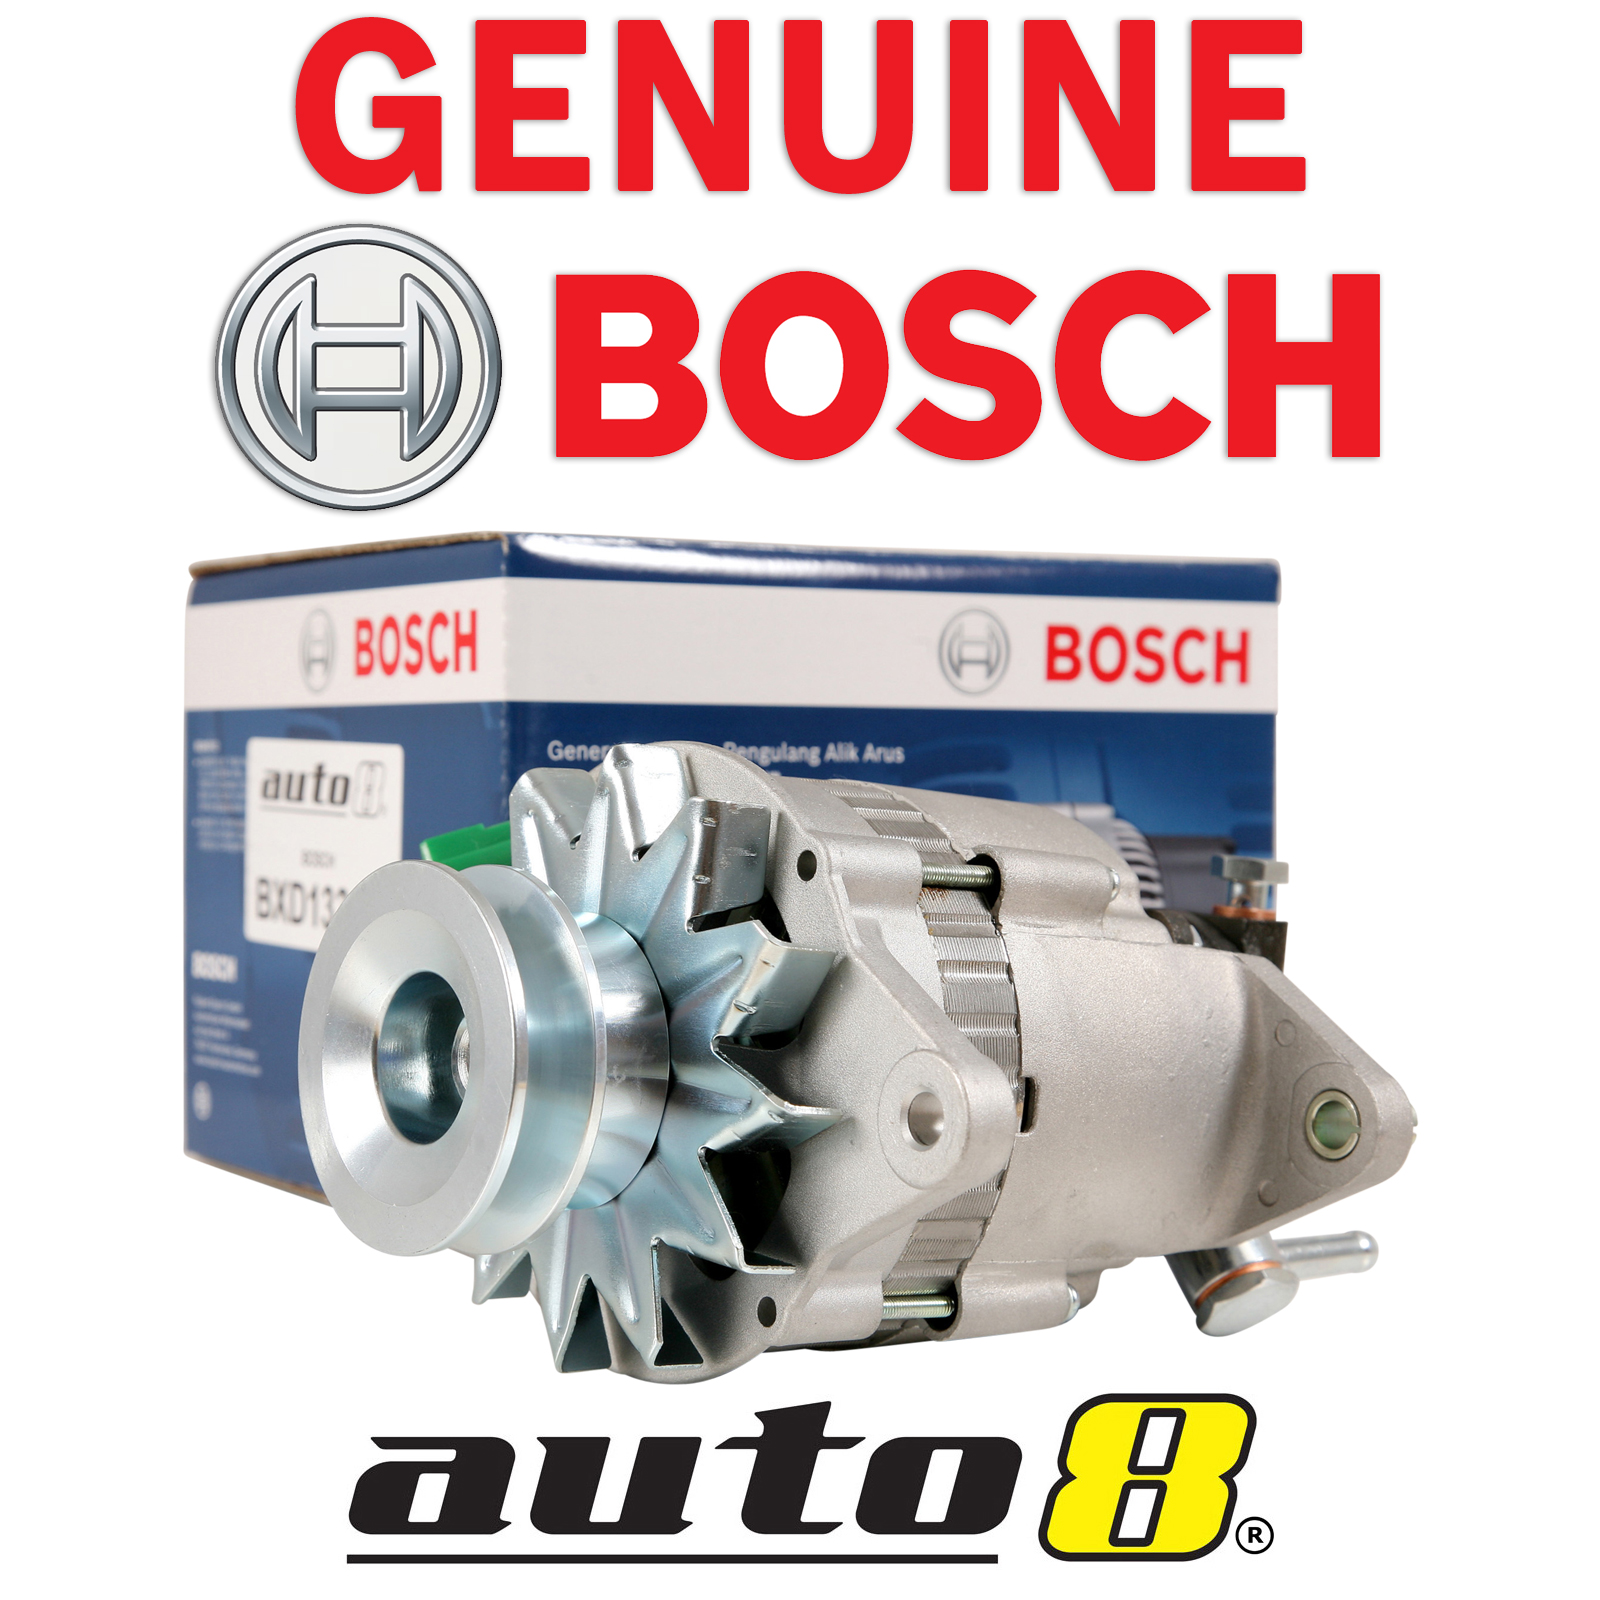 medium resolution of details about bosch alternator to fit toyota landcruiser 4 0l diesel 2h 1980 1990 hj60 hj75